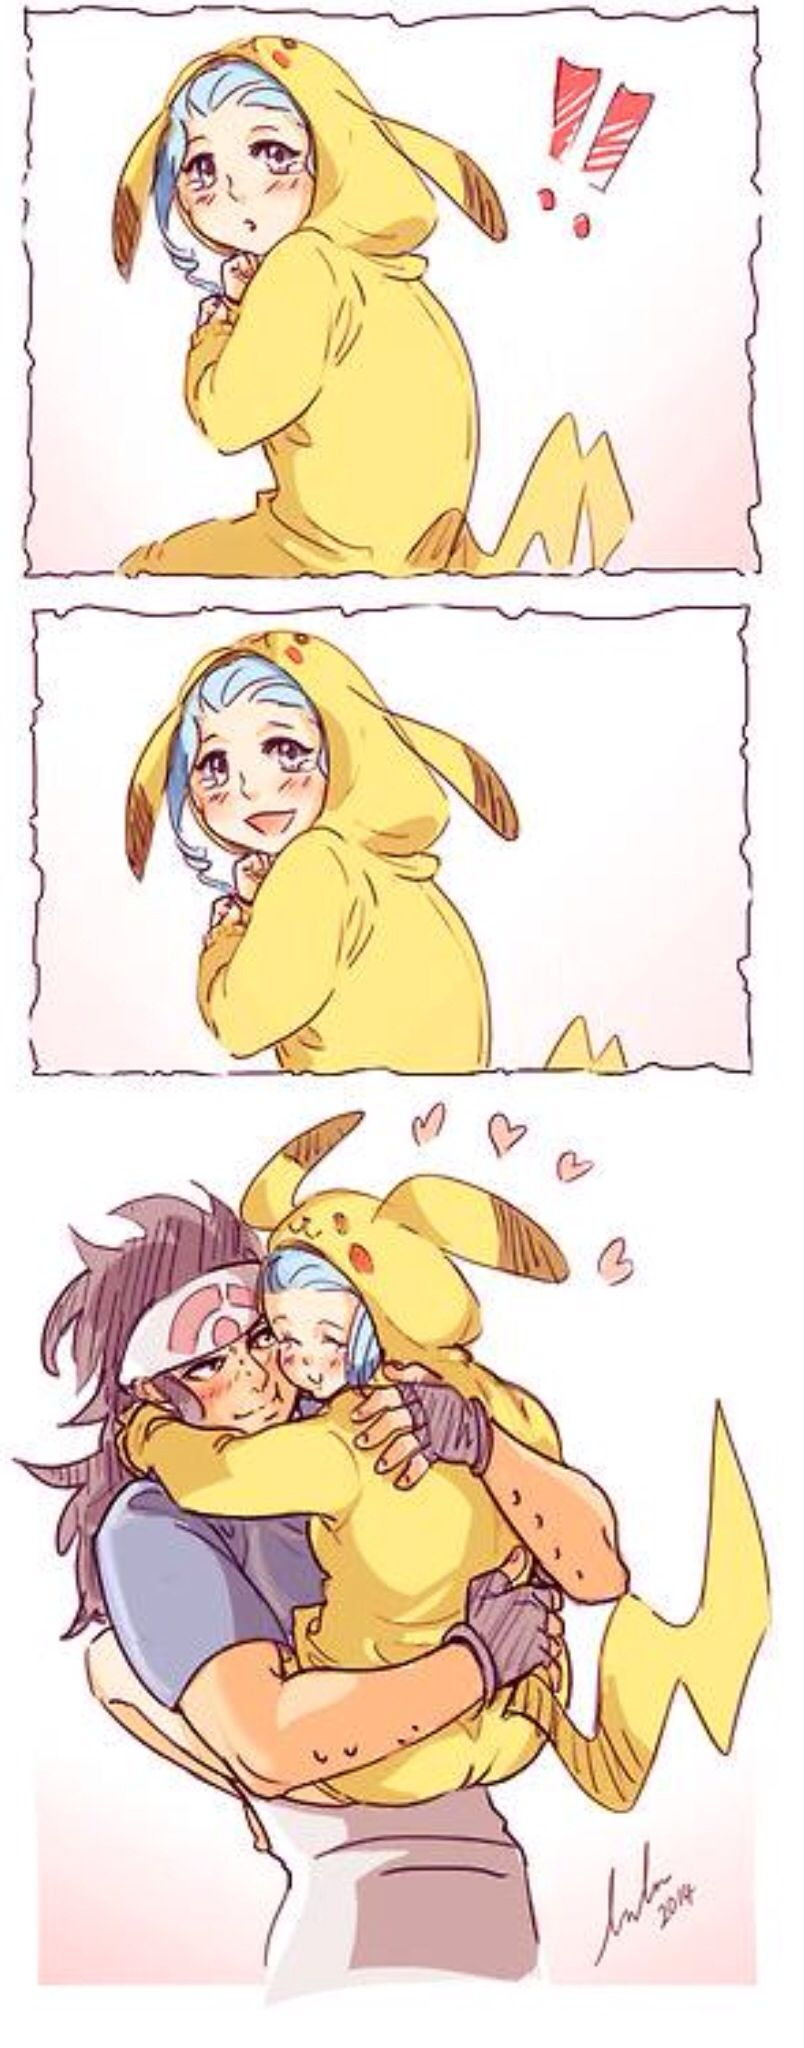 Pikachu Levy!!!!!!! >~< I'm pretty sure this is the cutest thing I've ever seen